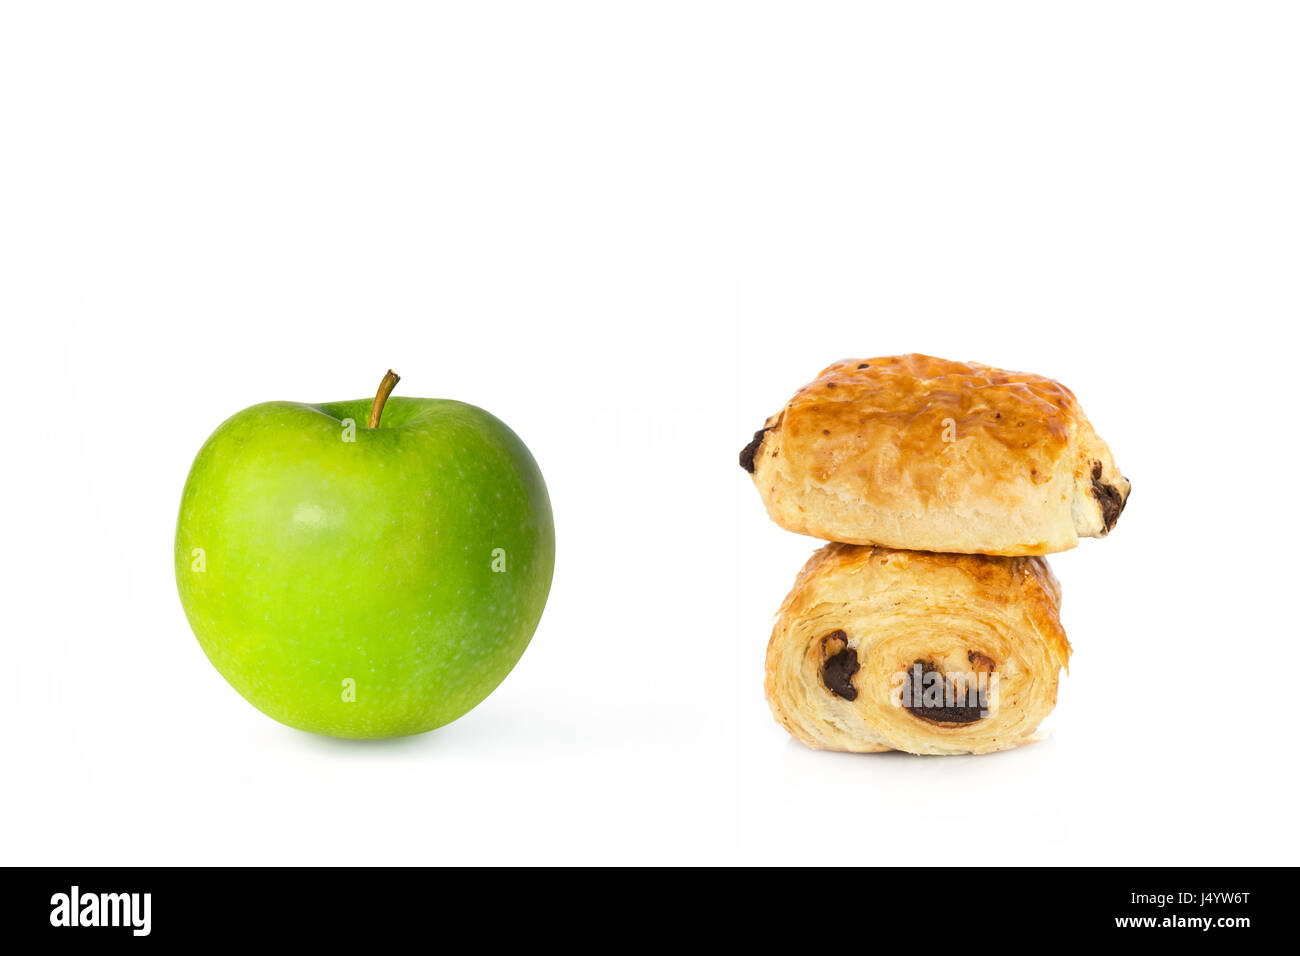 Chocolate croissants and a green apple on white background, healthy or unhealthy food choice concept - Stock Image